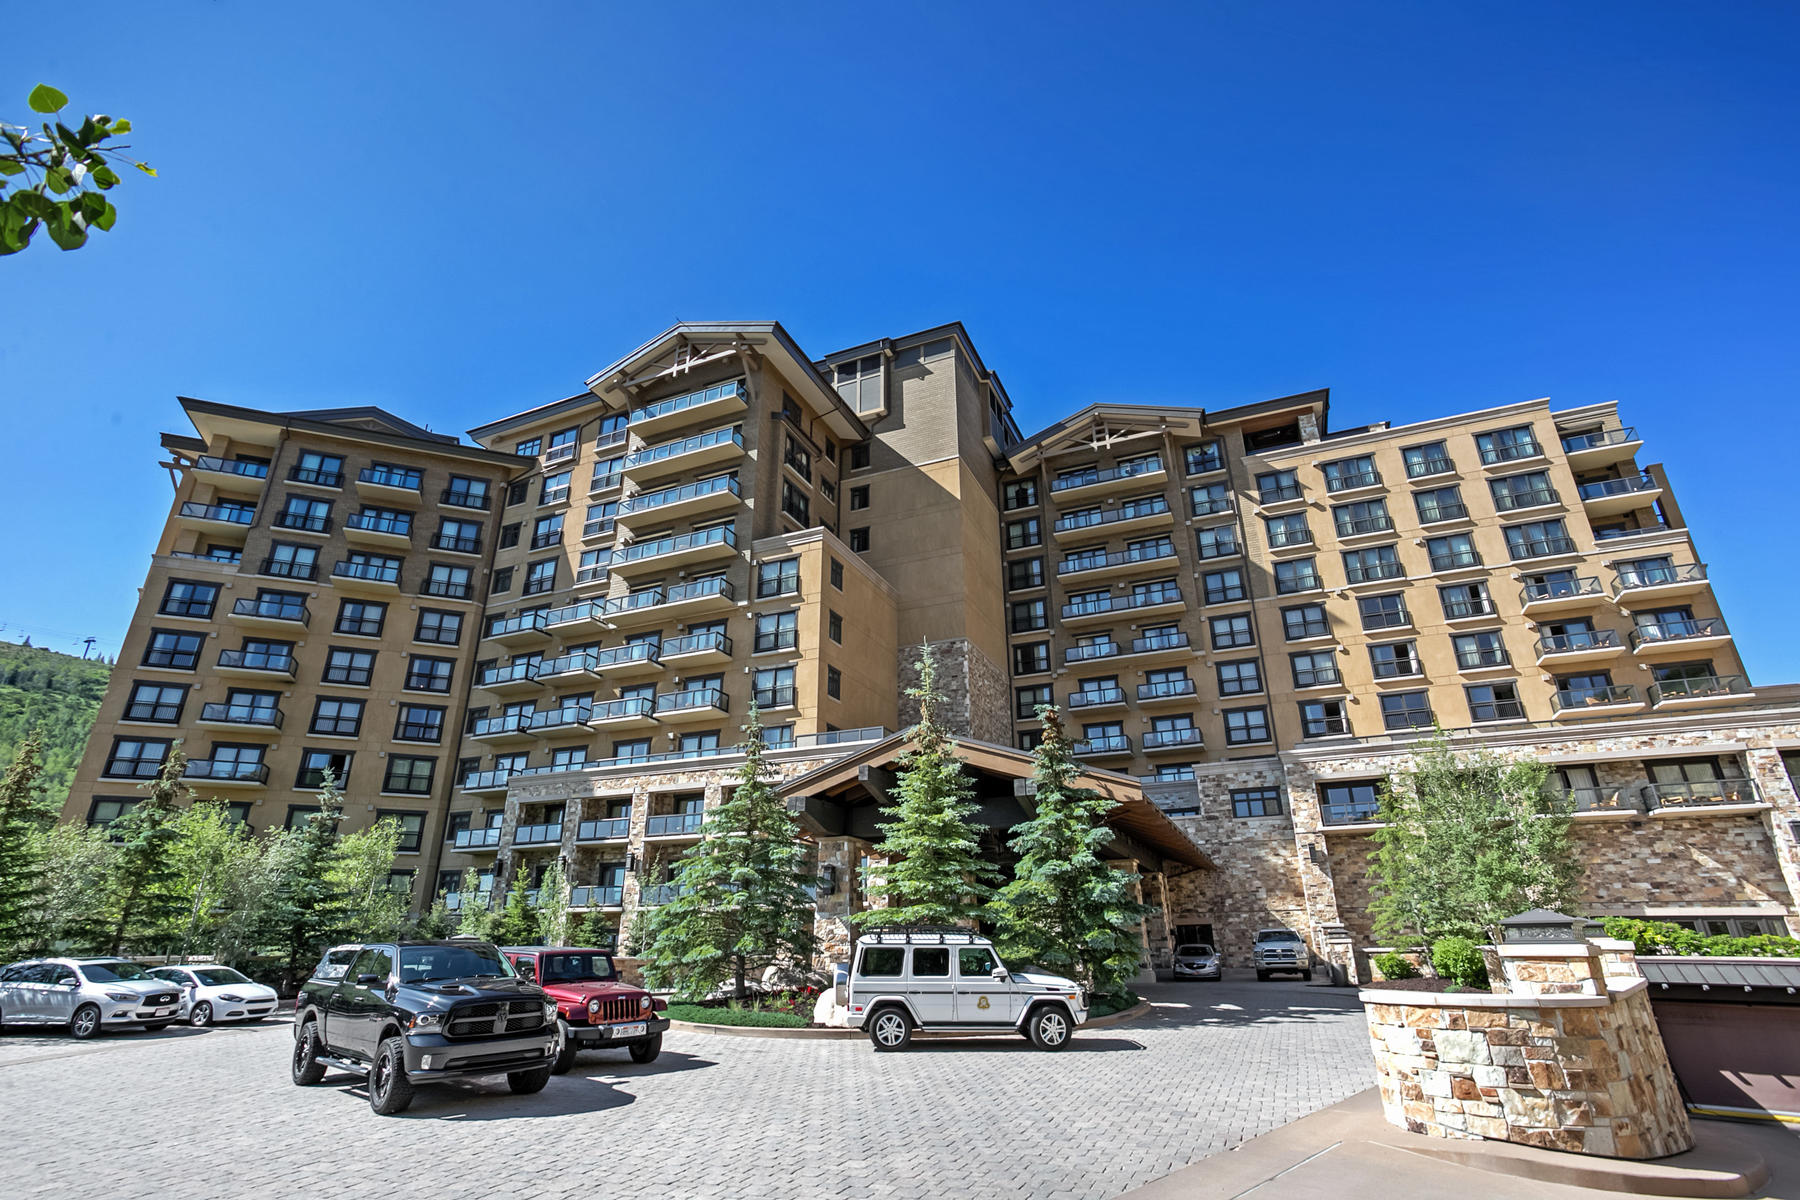 Additional photo for property listing at Slope-side St. Regis Pied-a-Terre 2300 E Deer Valley Dr #318 Park City, Utah 84060 United States